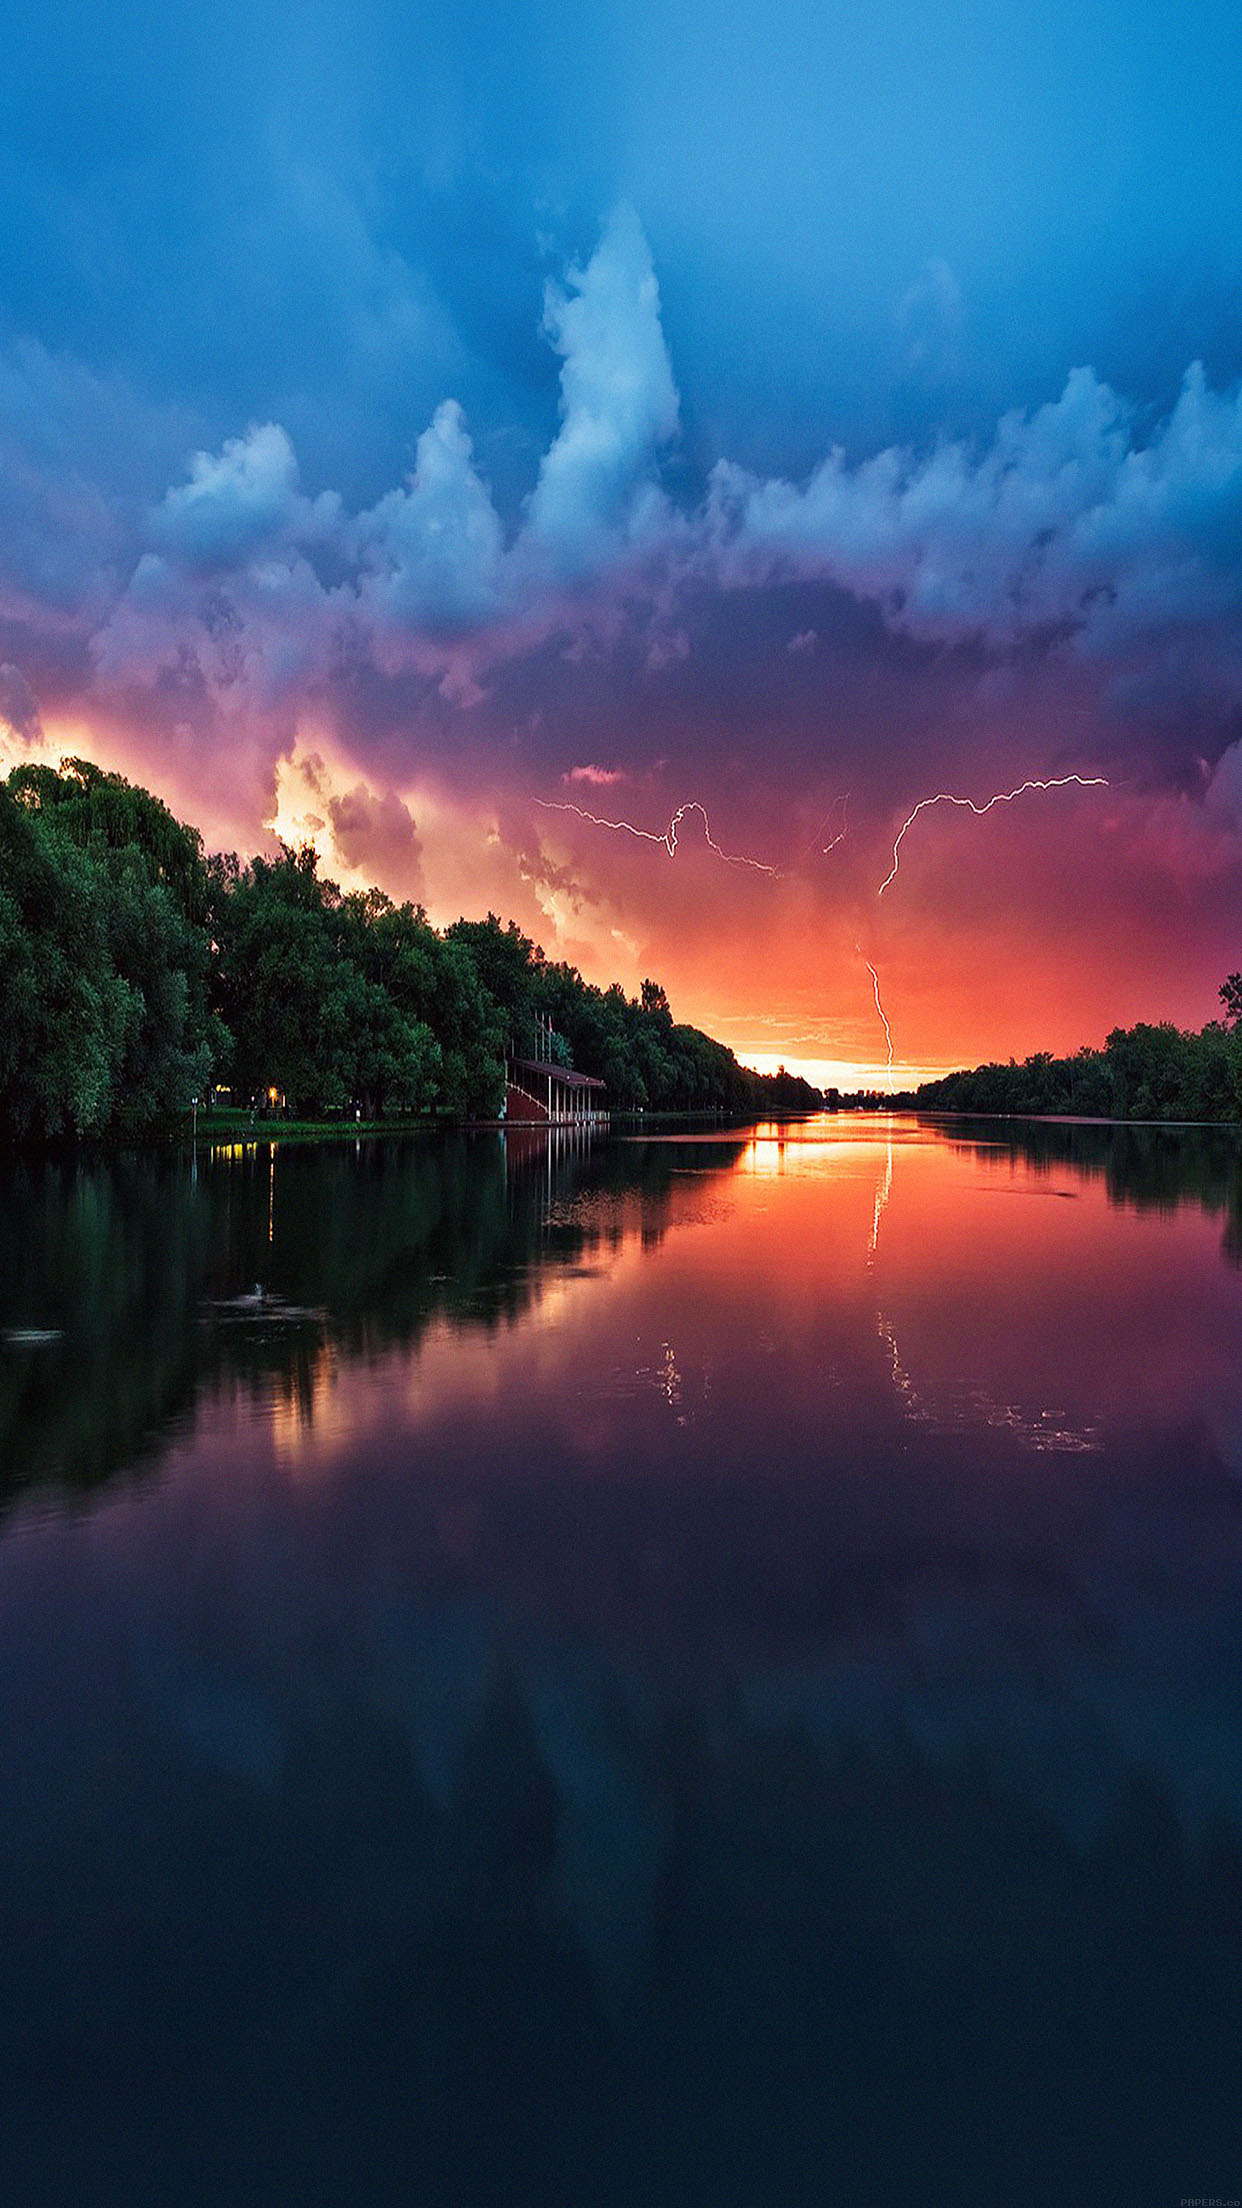 Wallpaper Lightening Reflected Lake Sea River Nature Android